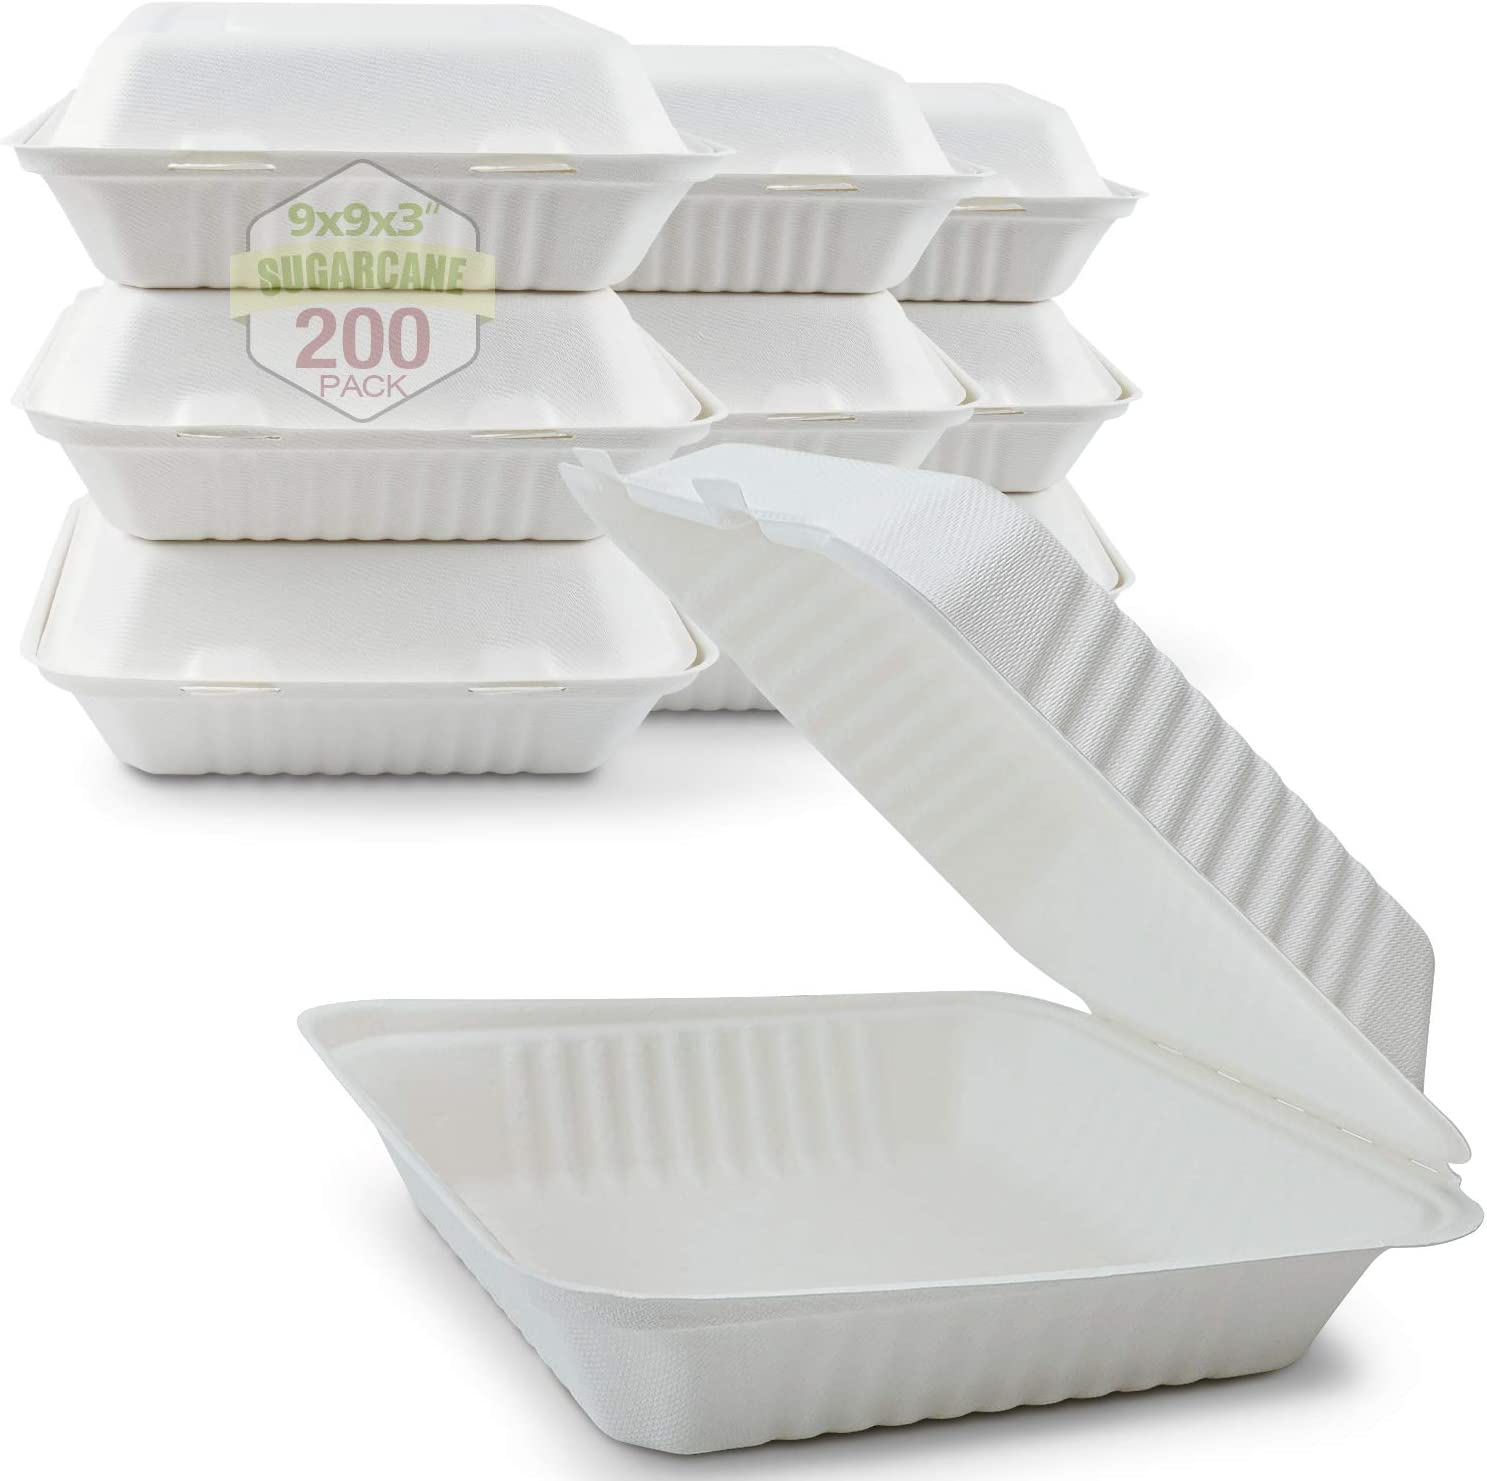 Green Earth 9-Inch, 200-Count, 1-Compartment, Compostable Clamshell, Natural Bagasse (Sugarcane Fiber), Take-Out/to-Go Food Boxes - Biodegradable Containers, Hinged Lid - Microwave-Safe - Gluten-Free